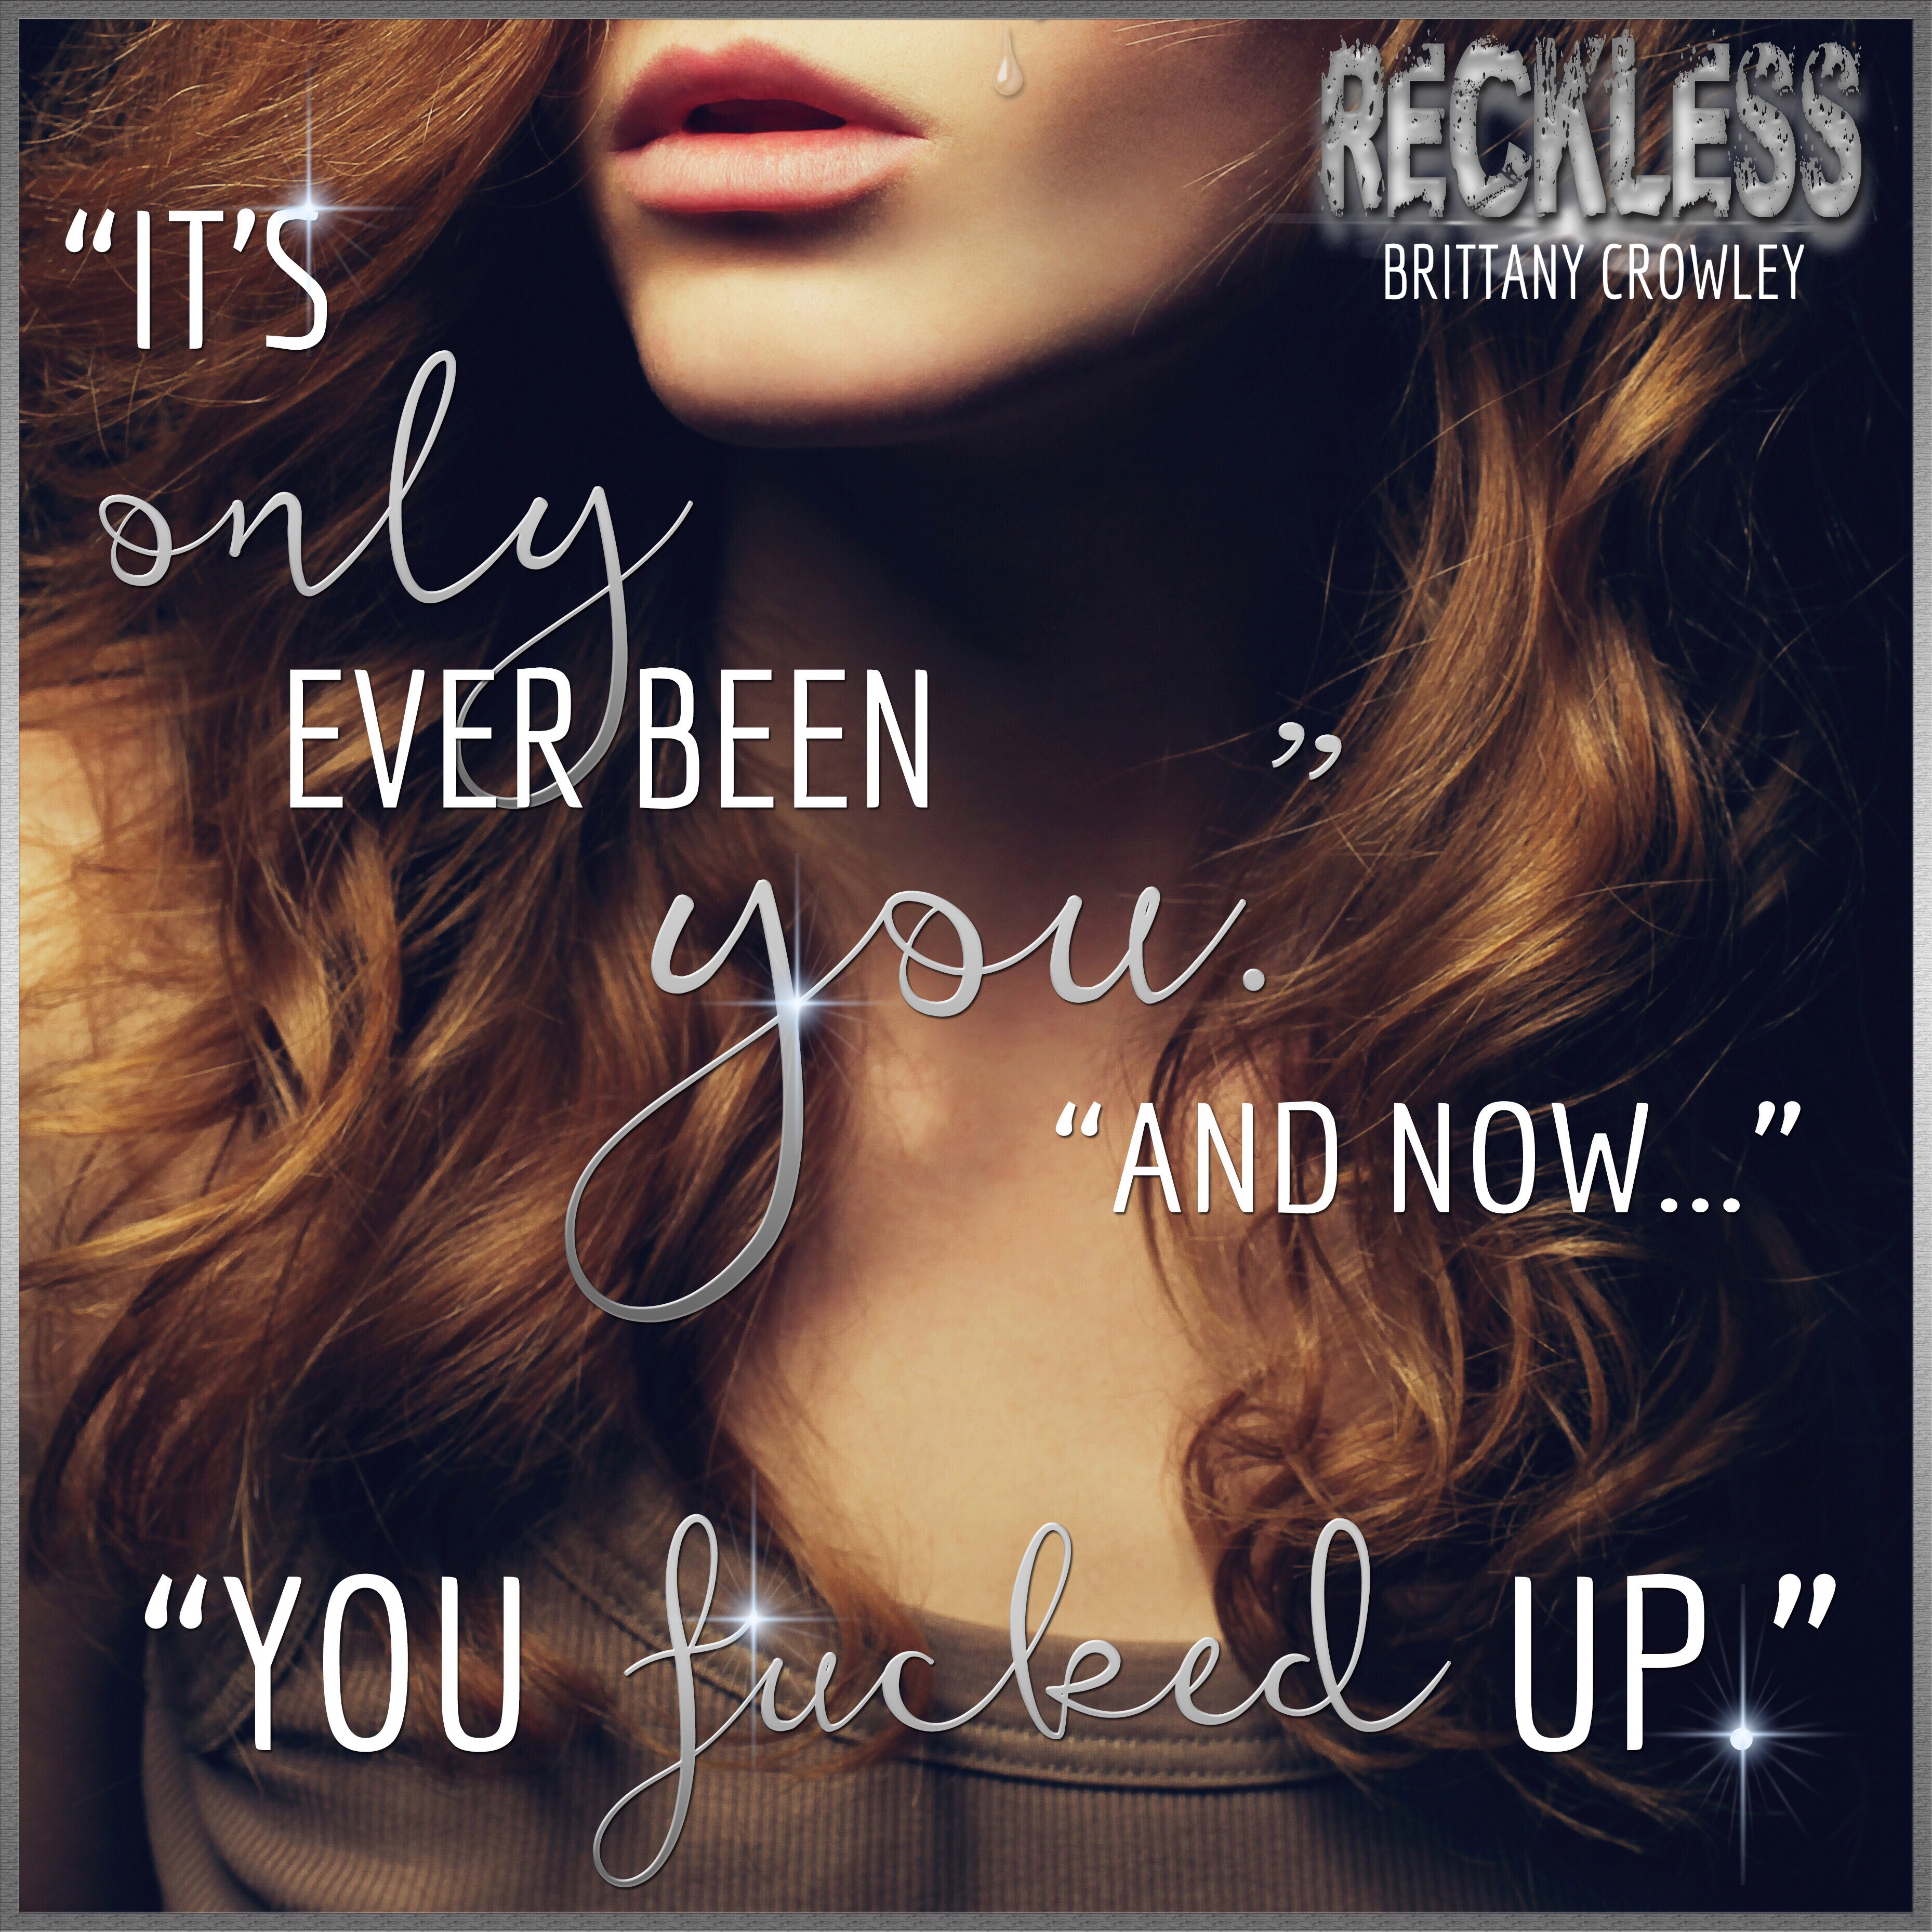 Reckless, Brittany Crowley,teaser #3